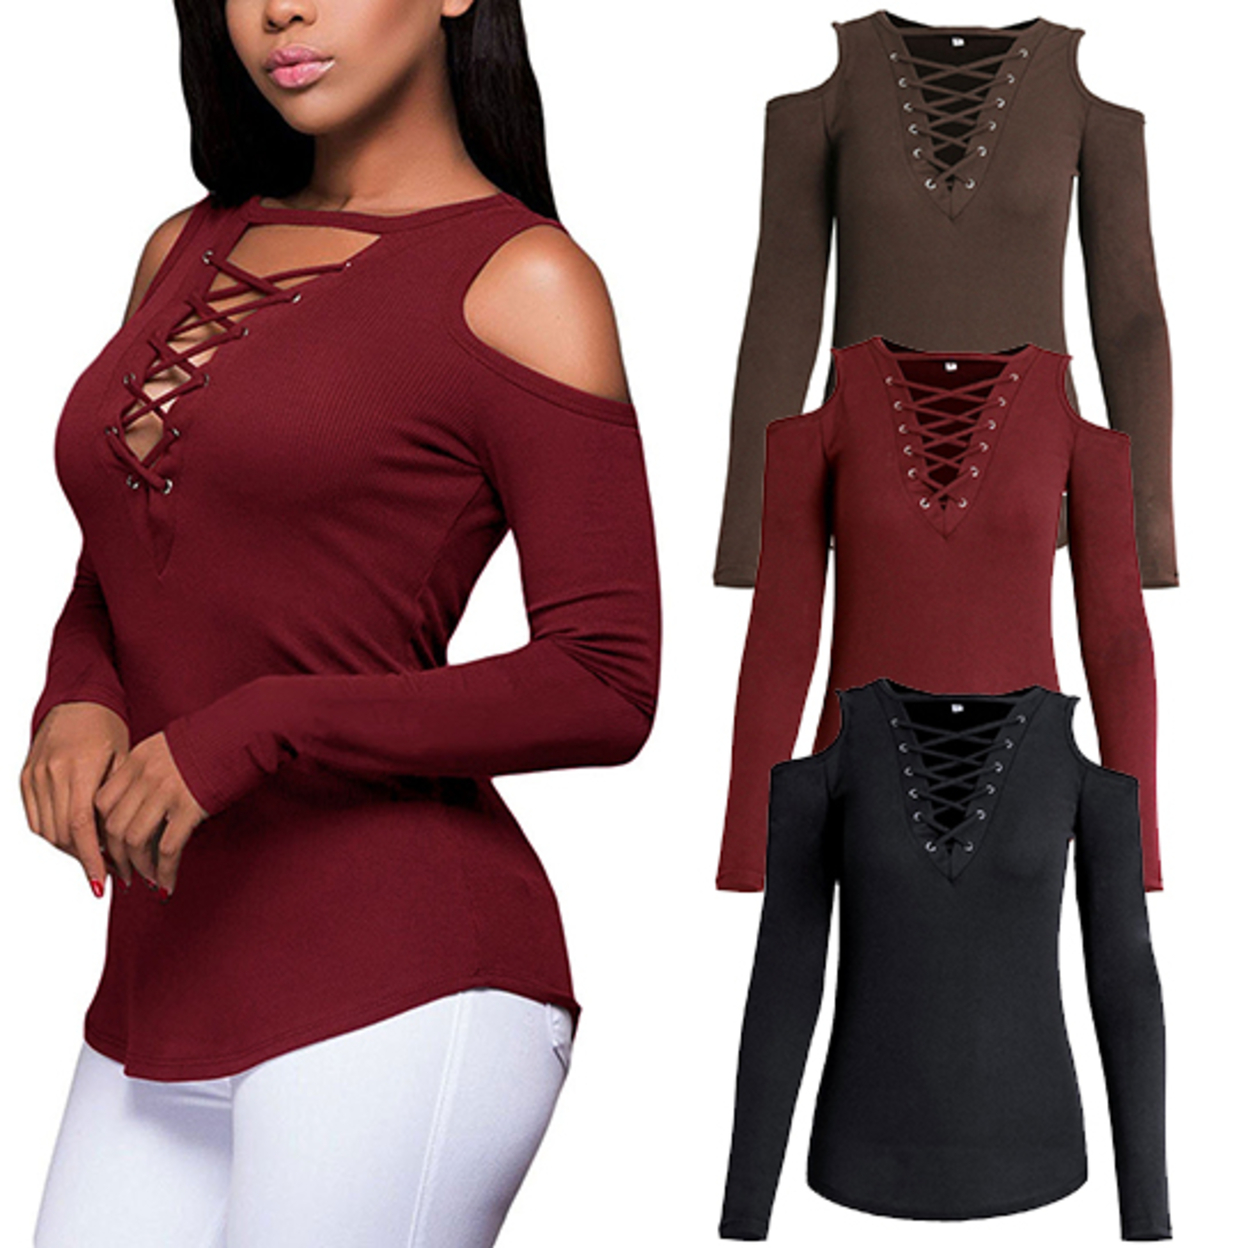 Plus Size Cold Shoulder Long Sleeve Blouse Lace up Ribbed Tops - S, Red 5808c3962c043d776f1bc857